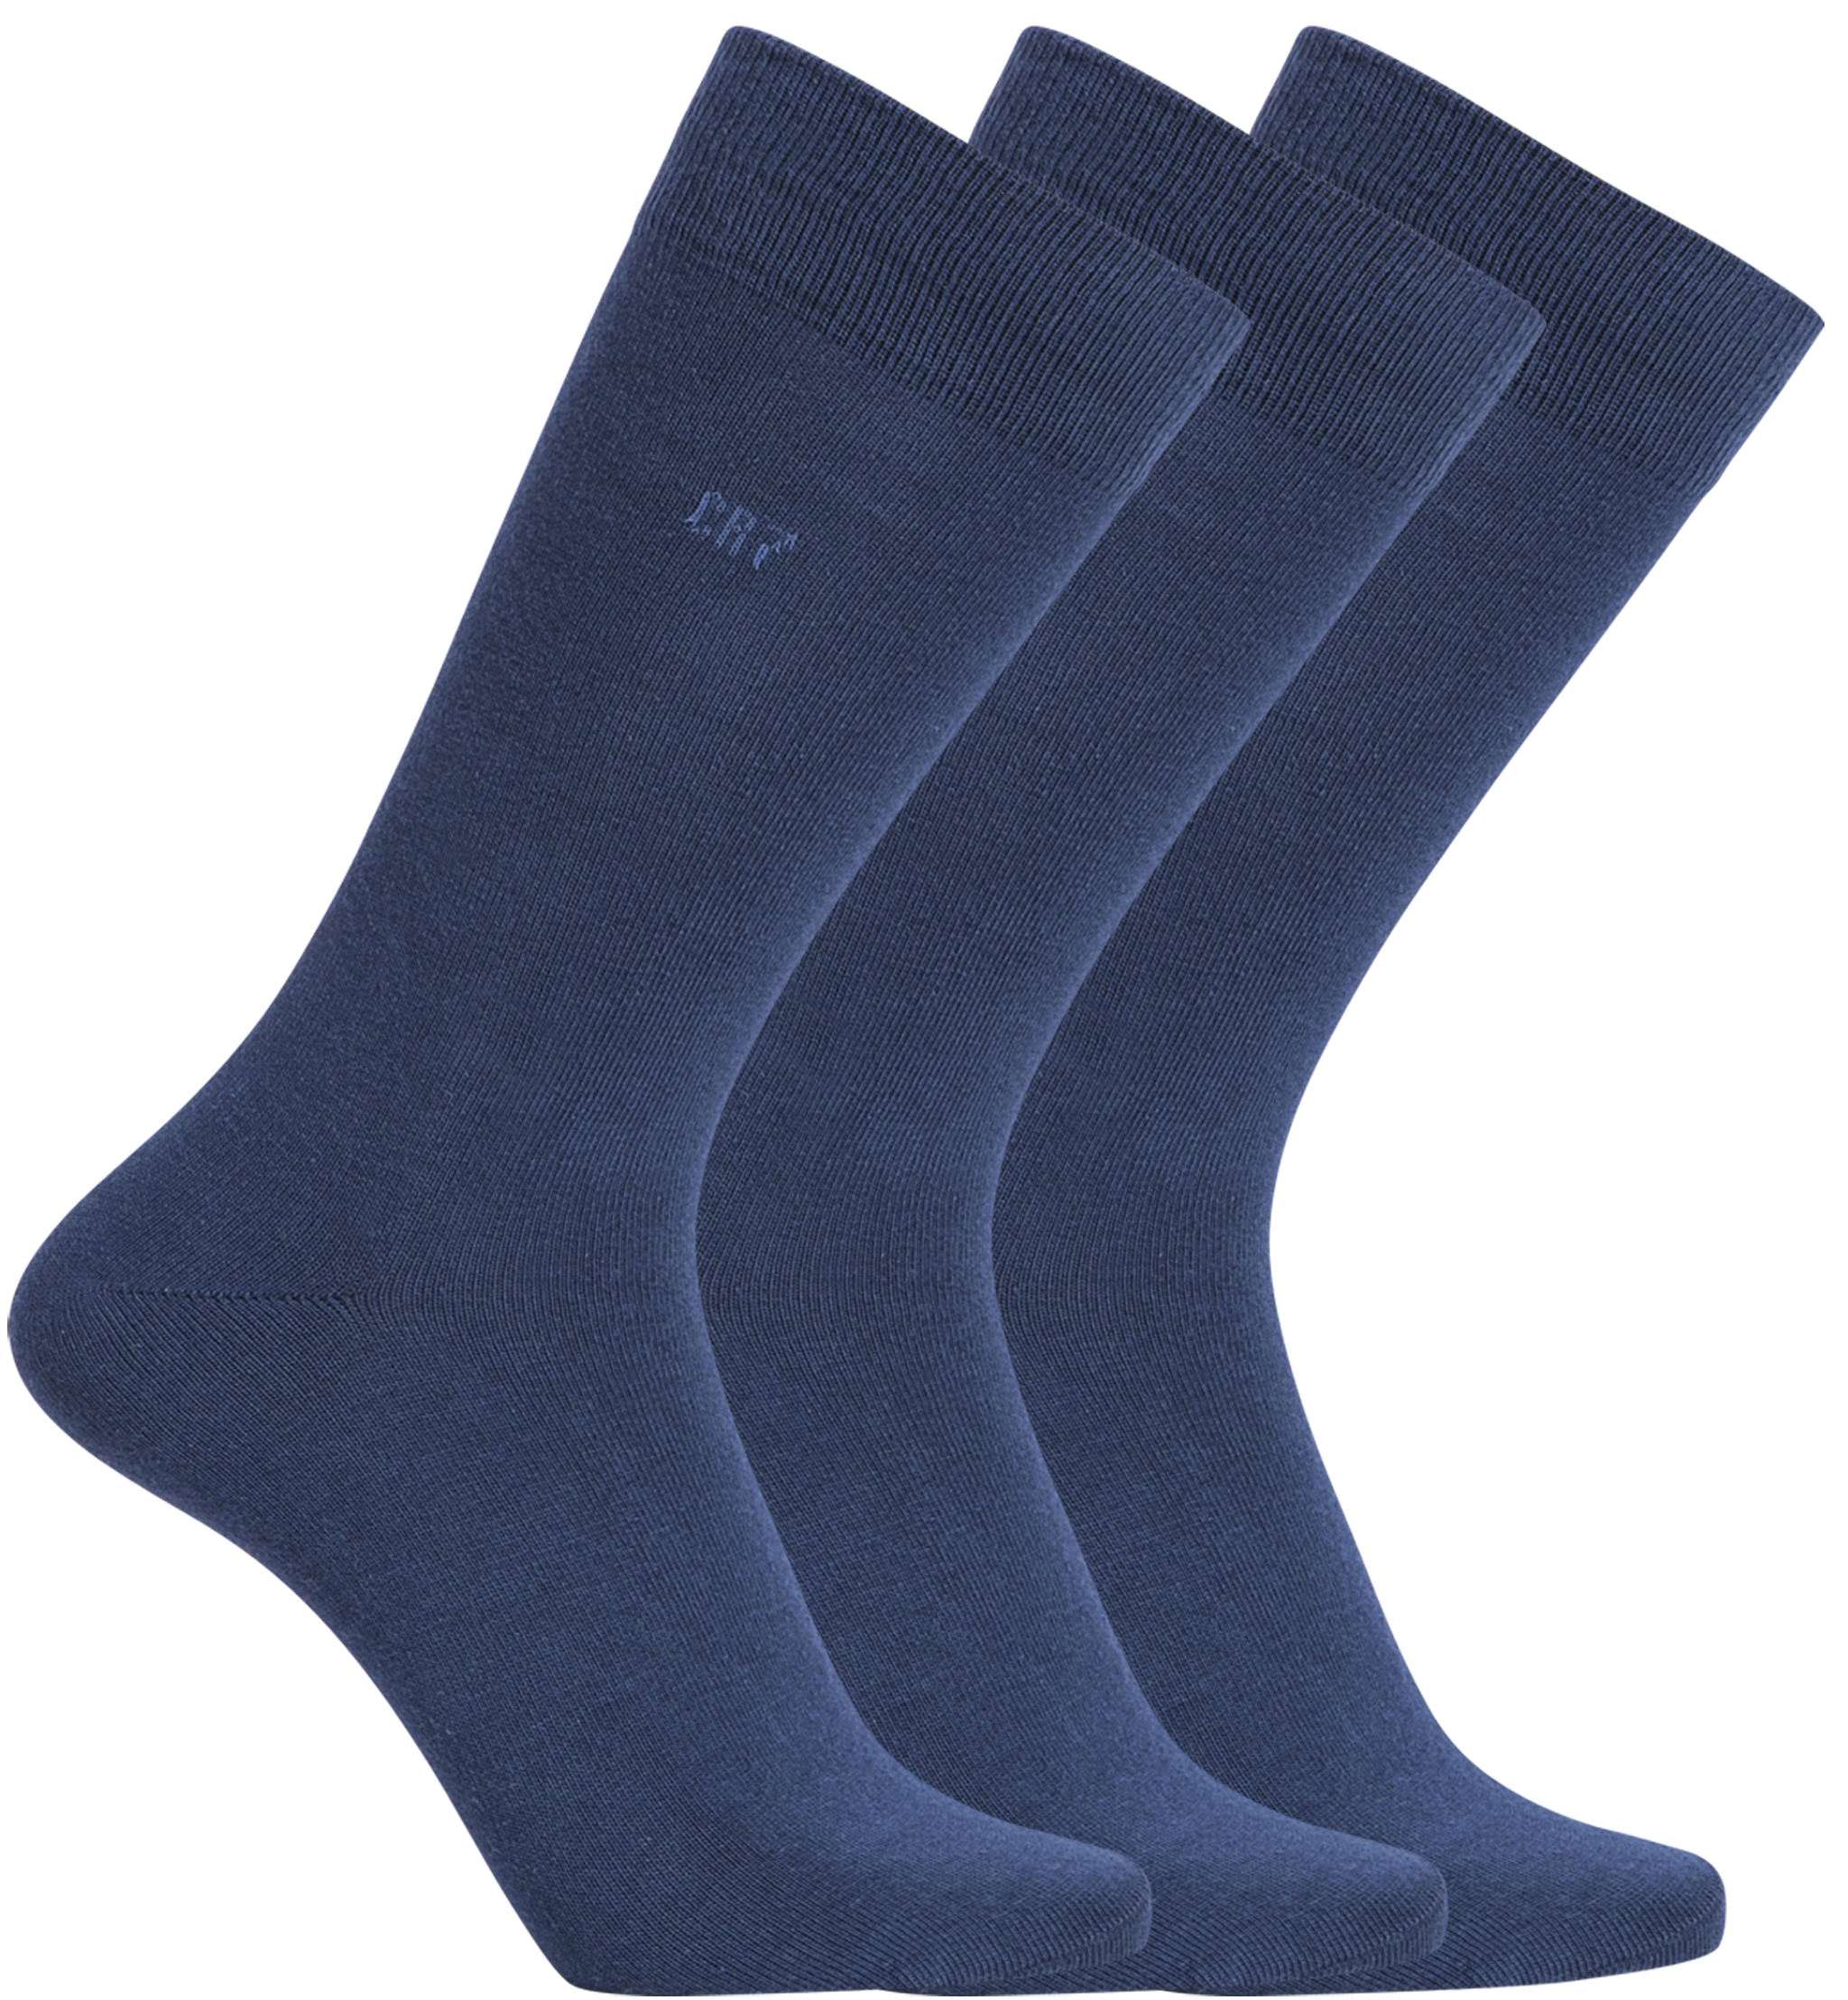 Cr7 basic socks men 3-pack - str. 40-46 fra cr7 fra shopwithsocks